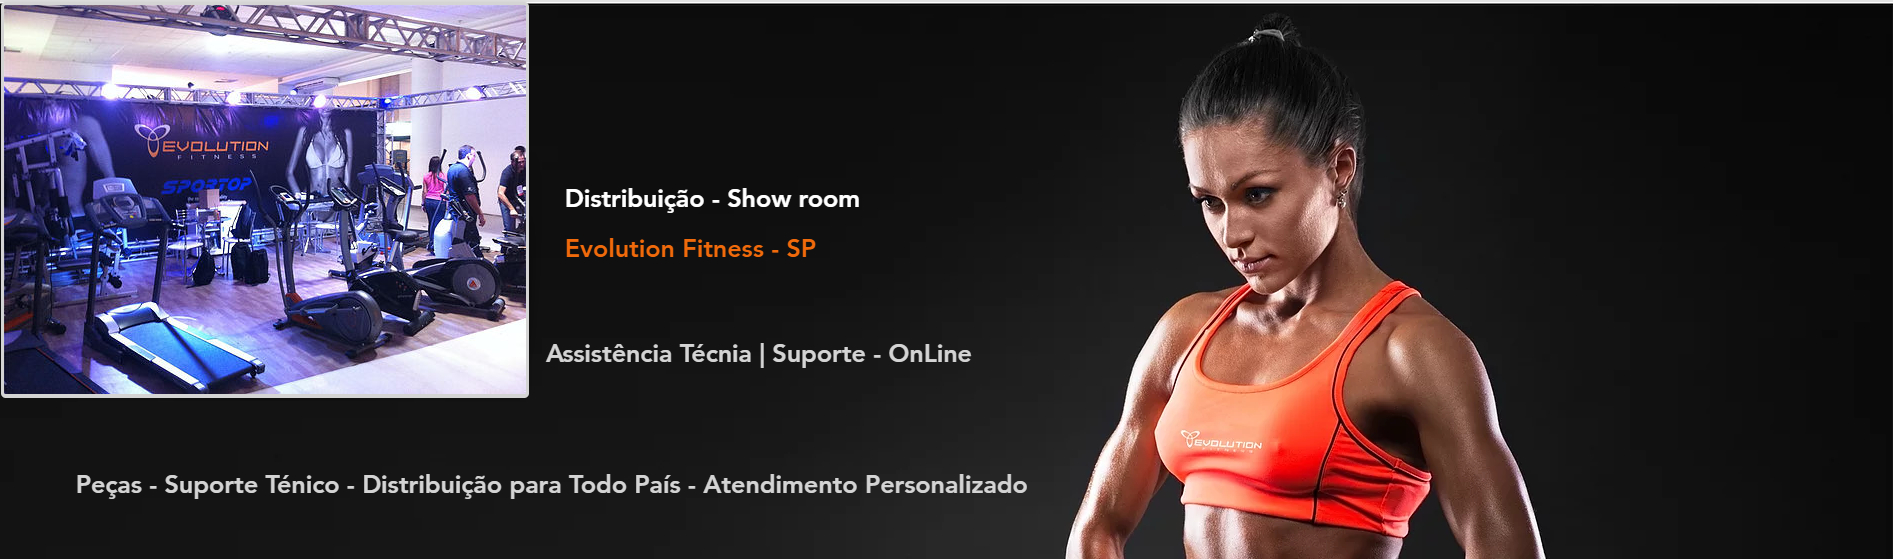 Assistencia Tecnica Evolution Fitness